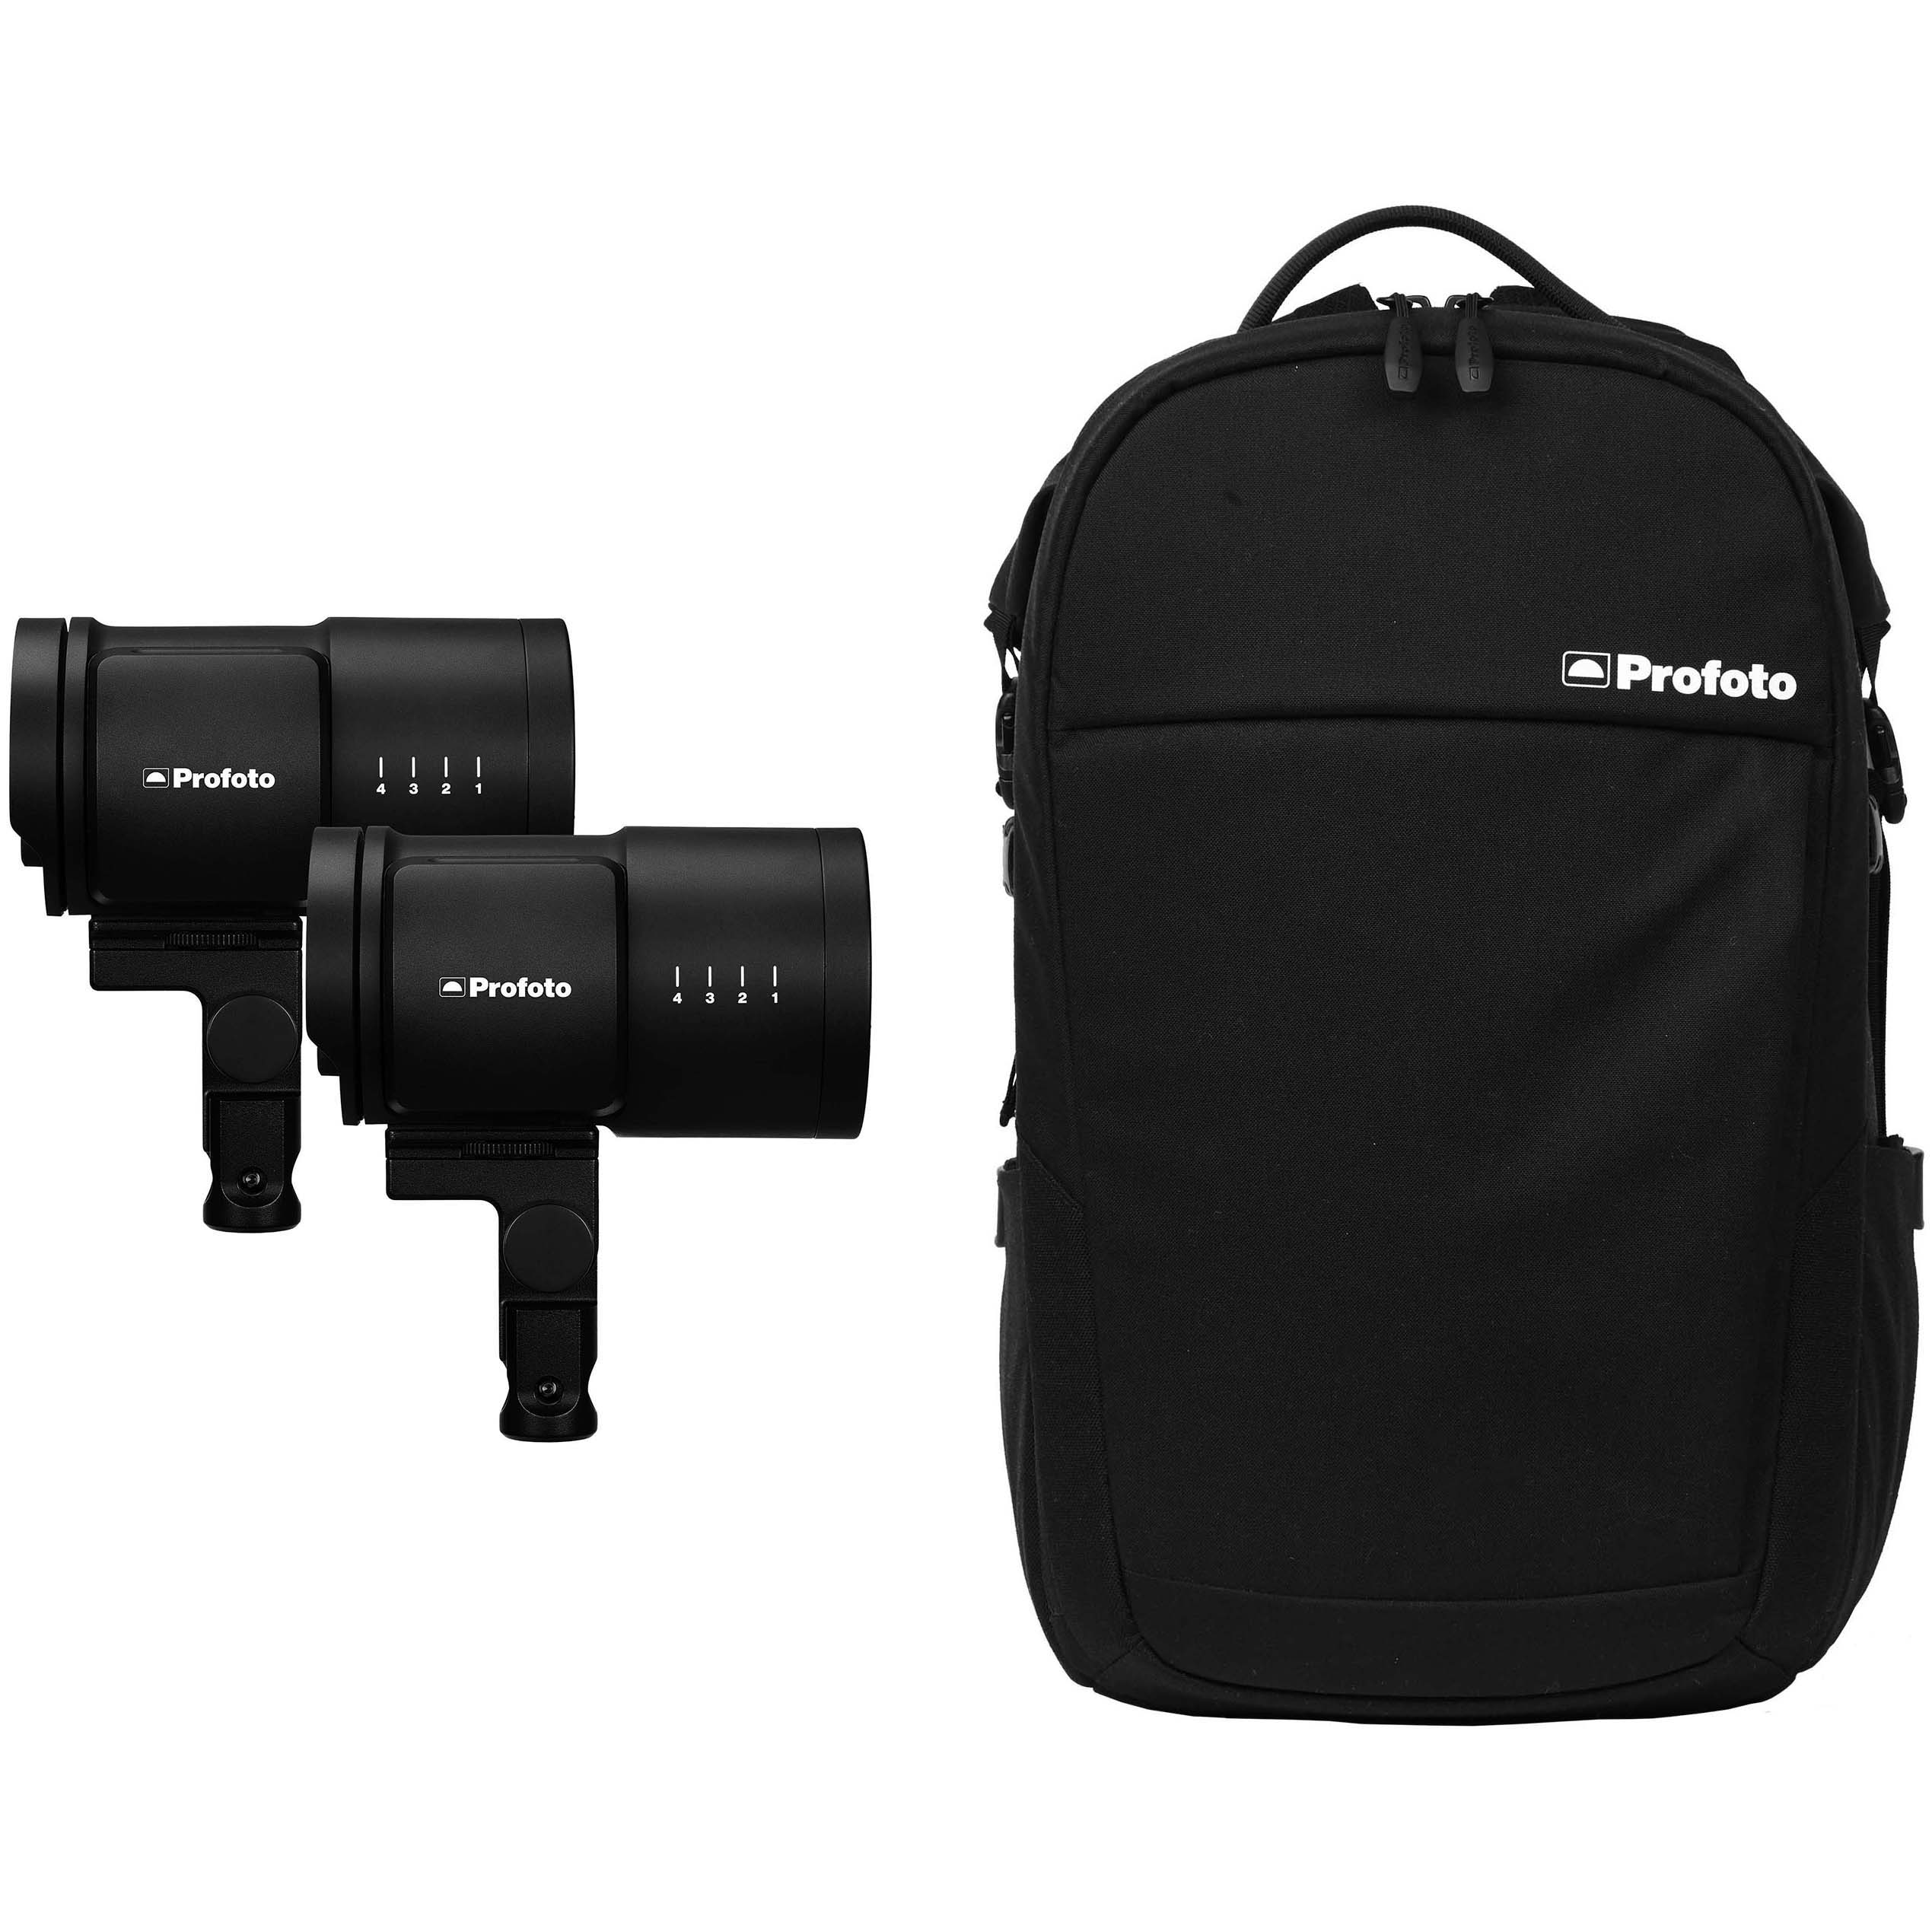 FLASH PROFOTO B10 DUO CON MOCHILA CORE BACKPACK S